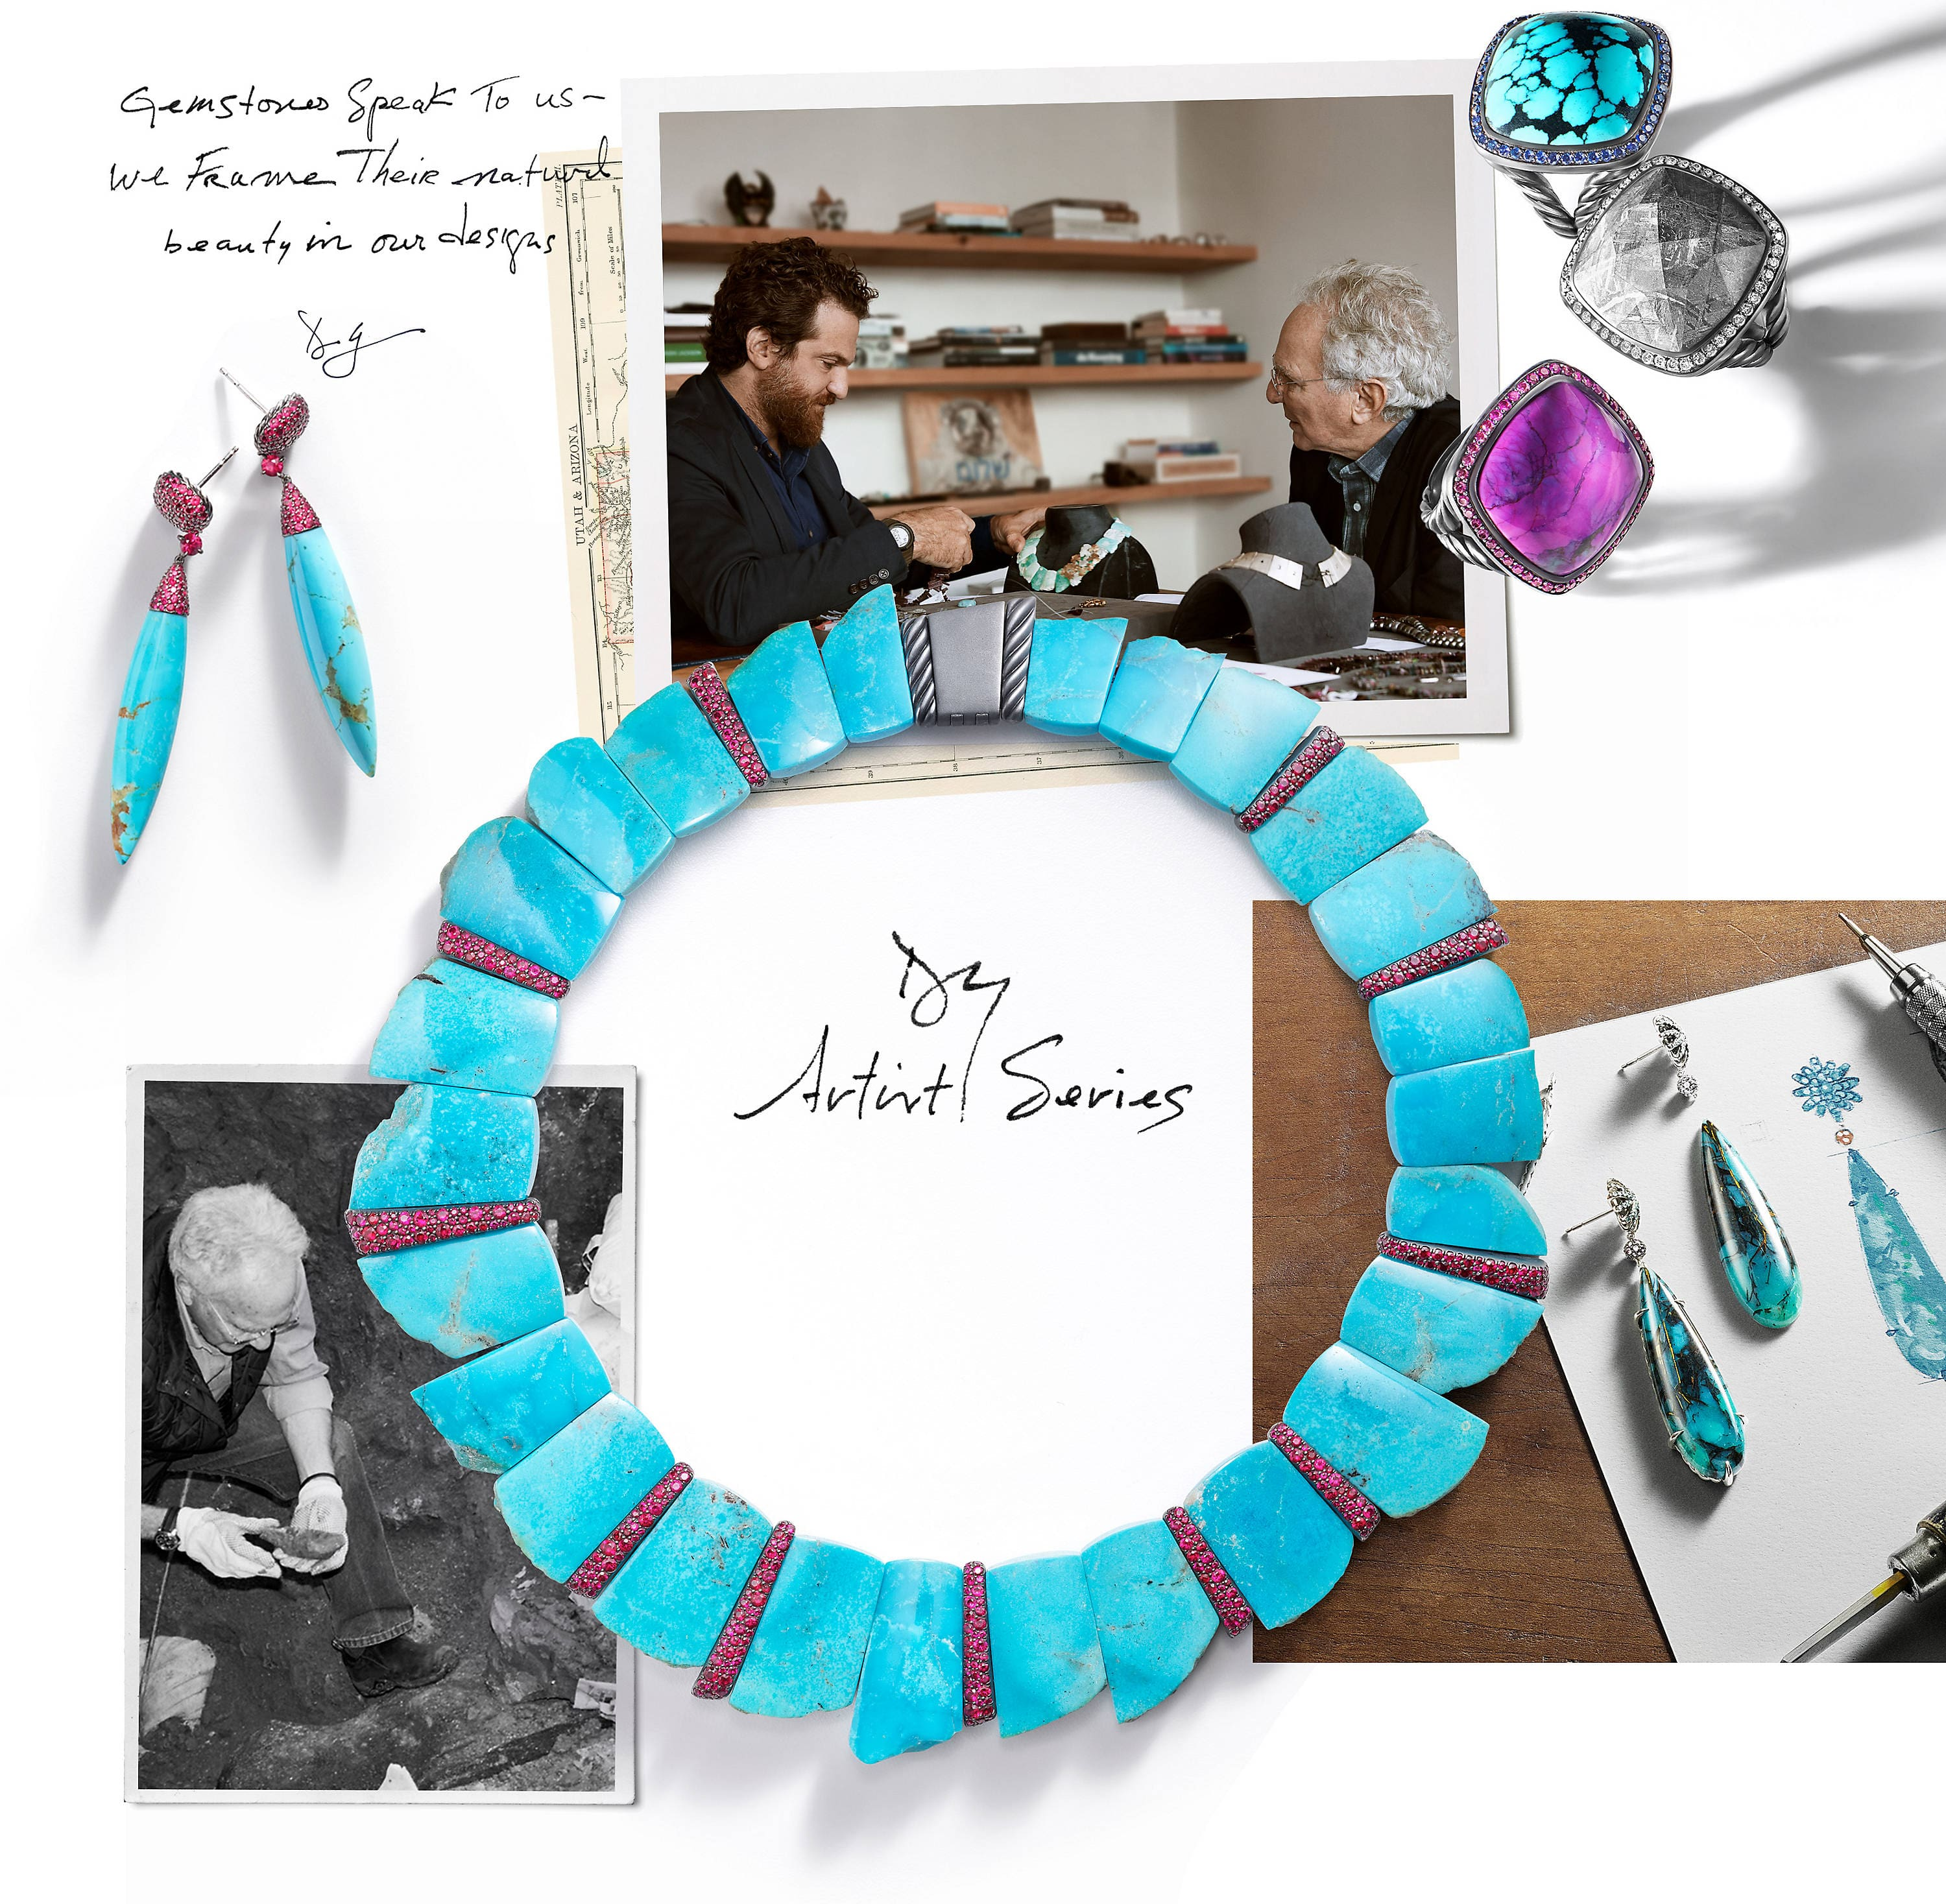 "A color photo shows a collage of pictures and jewelry. In the top-left corner are the words ""Gemstones Speak To us—we Frame Their natural beauty in our designs."" and ""DY"" handwritten in black ink. Below these words is a pair of David Yurman Artist Series drop earrings standing upright and casting long shadows on a white background. The earrings are crafted from turquoise and pavé pink sapphires. To the right of the words and earrings is a colorful self-developed picture of Evan Yurman and David Yurman sitting at a table facing one another as they discuss an Artist Series necklace and jewelry form on mannequin busts before them. In the background of the white-walled room are three light-brown wooden shelves stacked with books and a variety of different objects. This self-developed picture is overlaid over most of an off-white map with markings in black and red ink. Standing upright and casting long shadows over part of the right edge of the self-developed picture and the white background immediately to the right is a vertical stack of three David Yurman Albion cocktail rings in sterling silver or blackened sterling silver. From top is a ring with a turquoise center stone framed with pavé blue sapphires, a ring with faceted meteorite at the center framed with pavé white diamonds and a ring with a striated dark pink-and-purple center stone framed with pavé pink sapphires. Below the layered photo and map are the words ""DY Artist Series"" handwritten in black ink. To the left of these words is a black-and-white self-developed picture of David Yurman standing in a shallow quarry and looking down at a rock specimen he is holding while wearing gloves. To the right of these words is a color picture of a piece of white paper on top of a well-lit brown table with a colorful sketch of a single earring in a pair of David Yurman Artist Series drop earrings. The actual earrings are arranged upright and casting long shadows on the piece of paper to the left of the sketch. One of the earrings is complete, while the other is complete except for attaching the prong component to the drop component. The earring drops are crafted from turquoise, while the prong components are crafted from pavé white diamonds. Also situated on top of the right corners of the paper are tools used to craft jewelry. Positioned over the three photos and around the handwritten words while casting long shadows is an Artist Series slab necklace crafted from turquoise, pavé rubies and sterling silver with black rhodium."